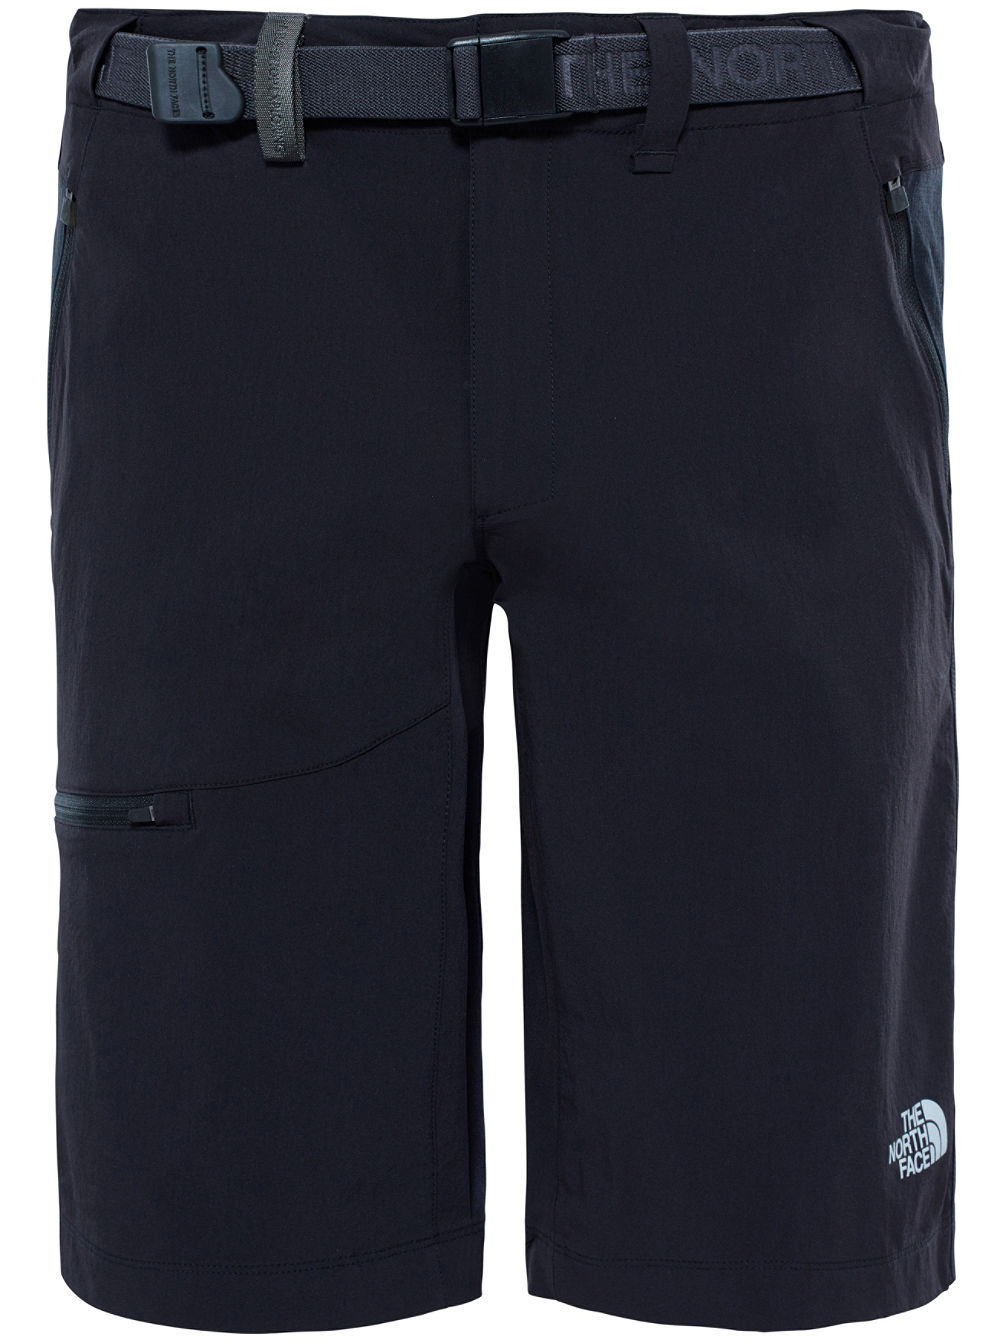 Speedlight Short Outdoor Pants